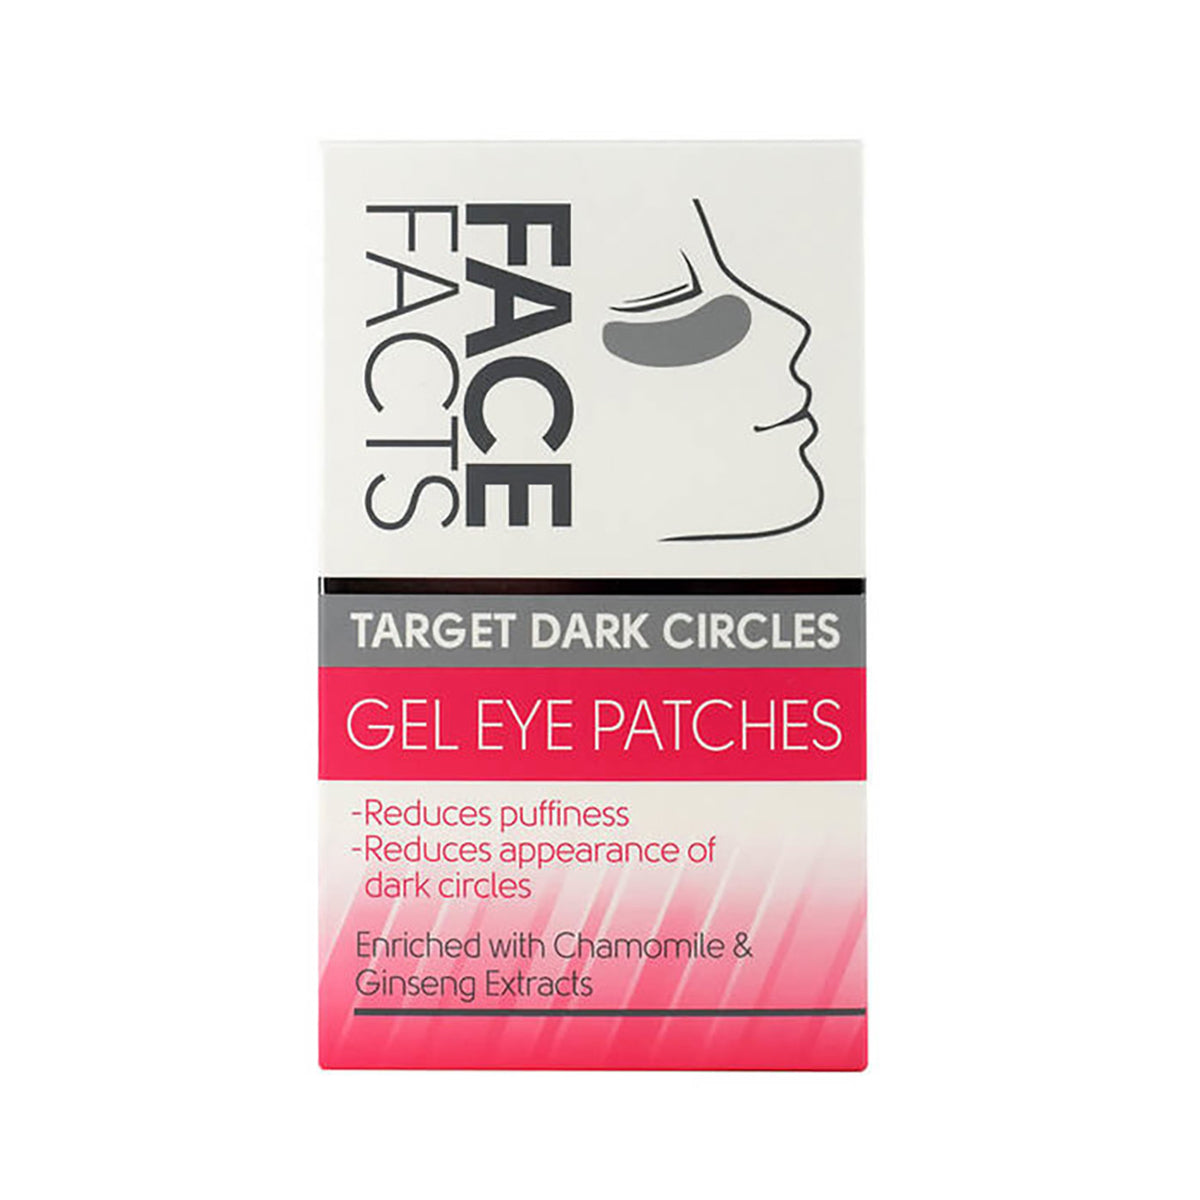 Face Facts Gel Eye Patches - Target Dark Circles